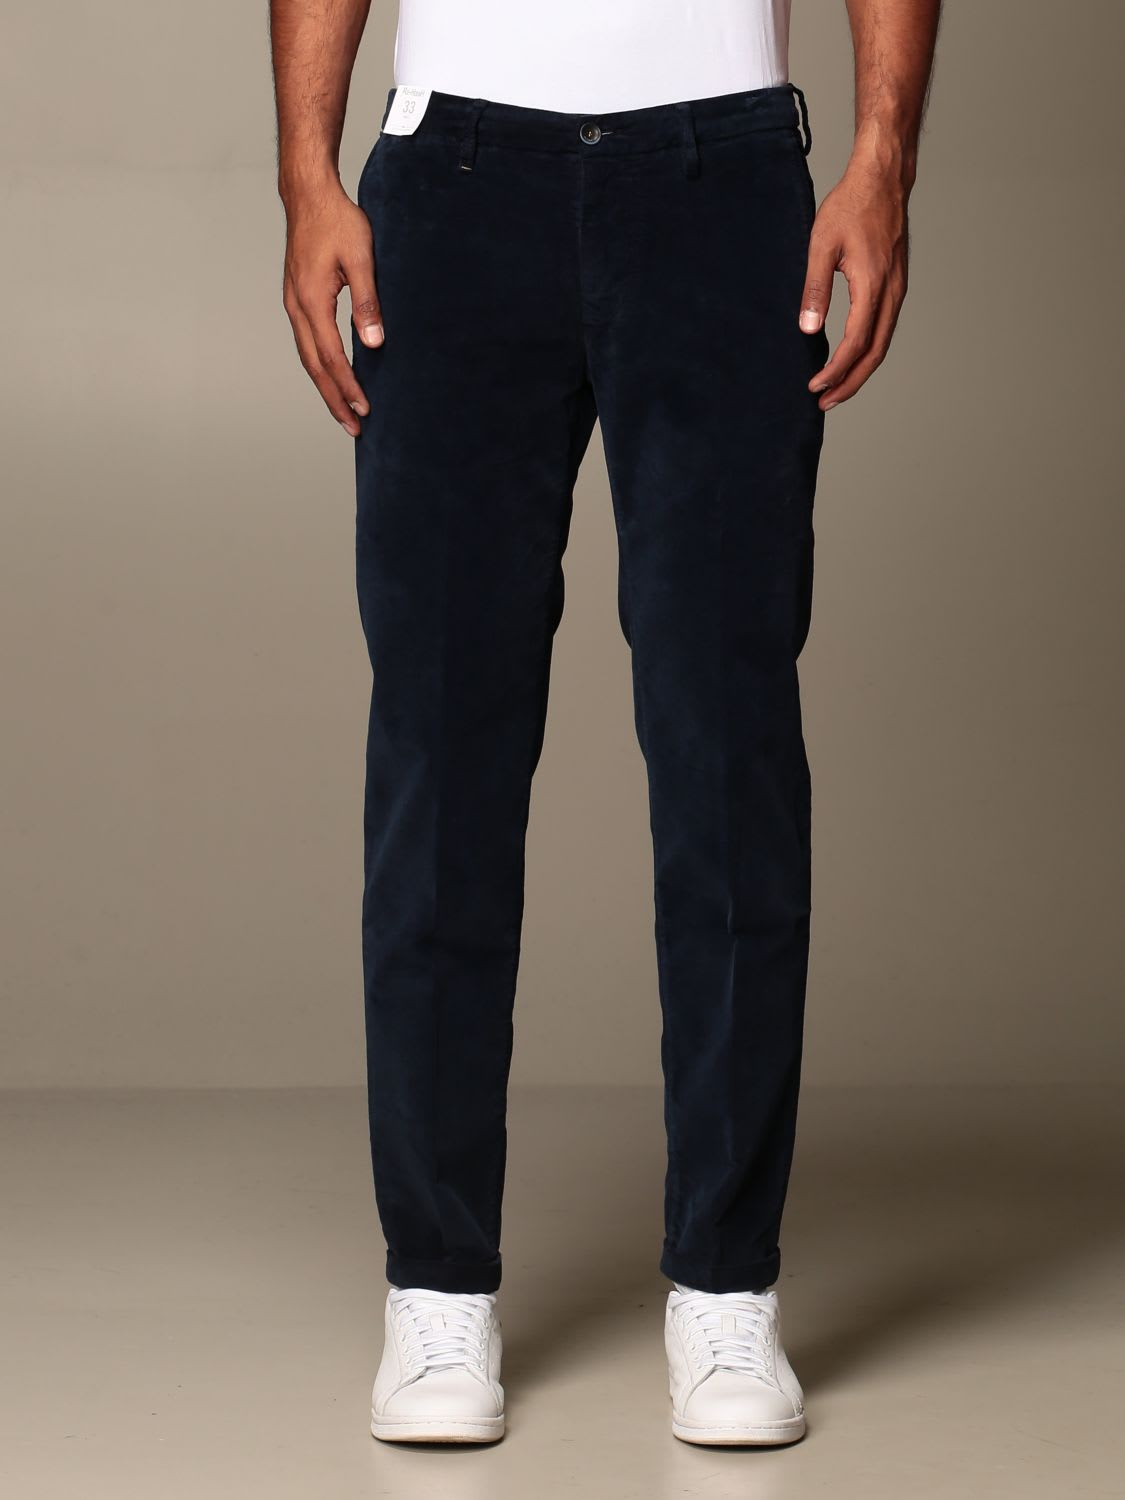 Re-hash Pants Mucha Re-hash Slim Fit Trousers